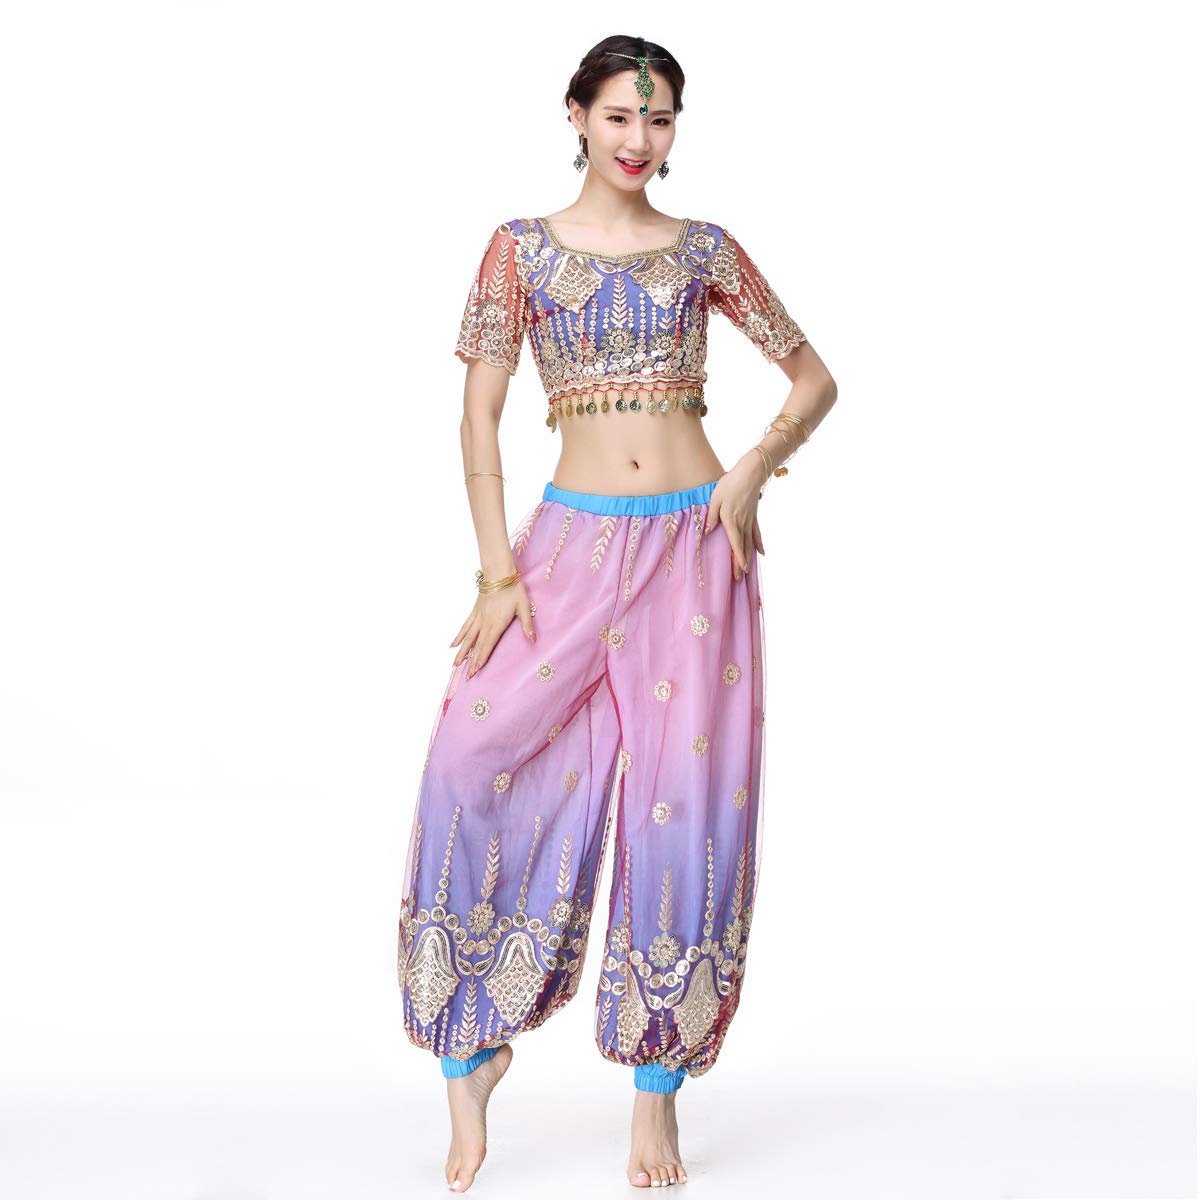 Belly Dance Bollywood Costume - Sari Noble Indian Dance Outfit Halloween Costumes Harem Pants 2 Pieces for Women(Purple,Large) by MISI CHAO